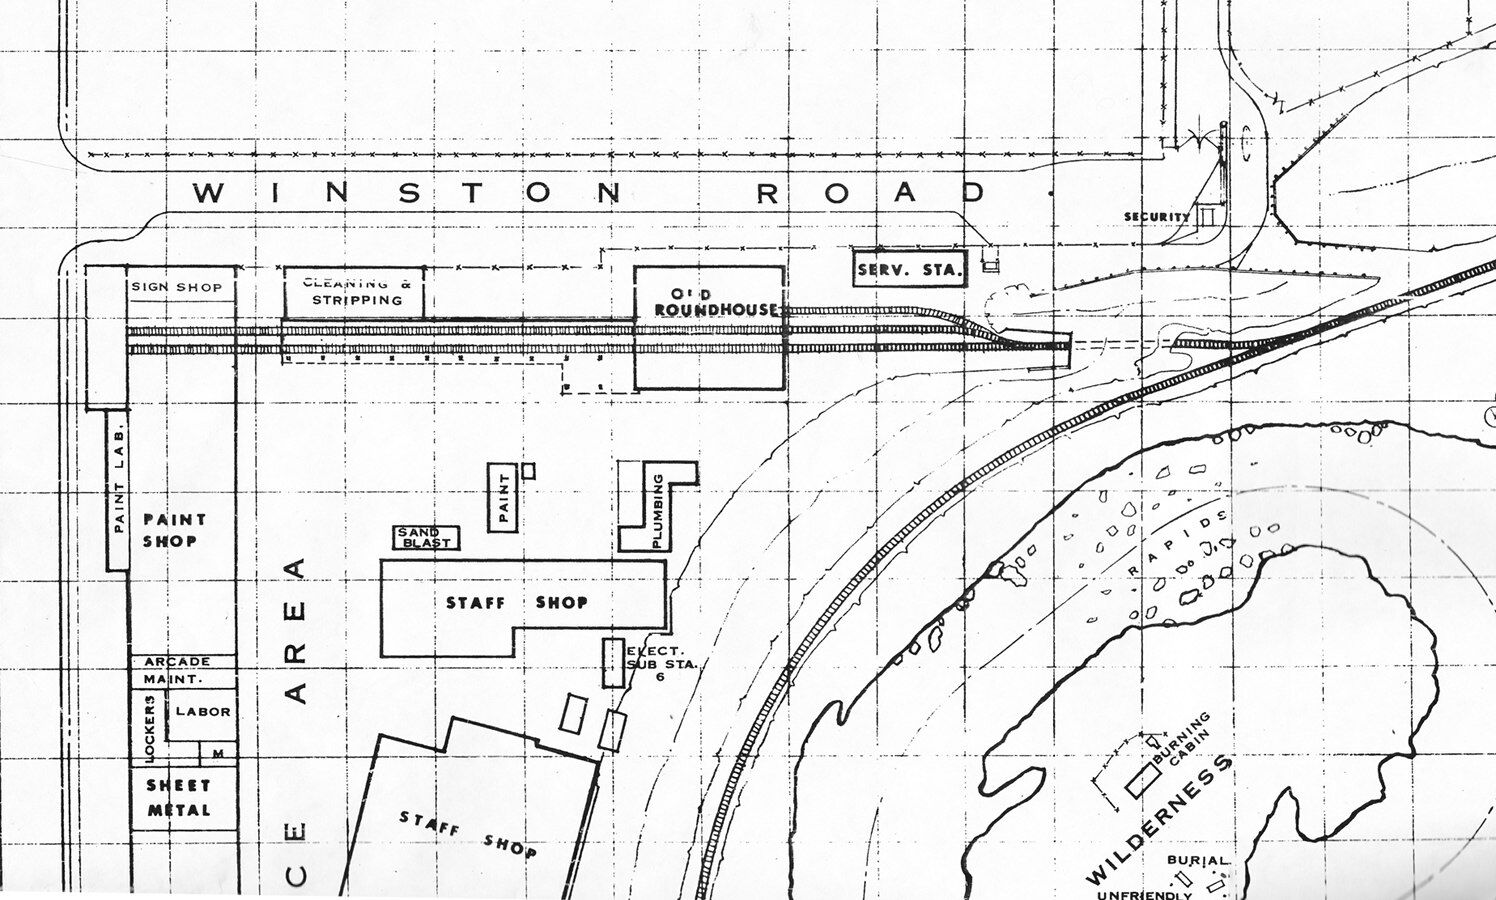 A 1967 plot plan shows where the train shed and its related structures were located.